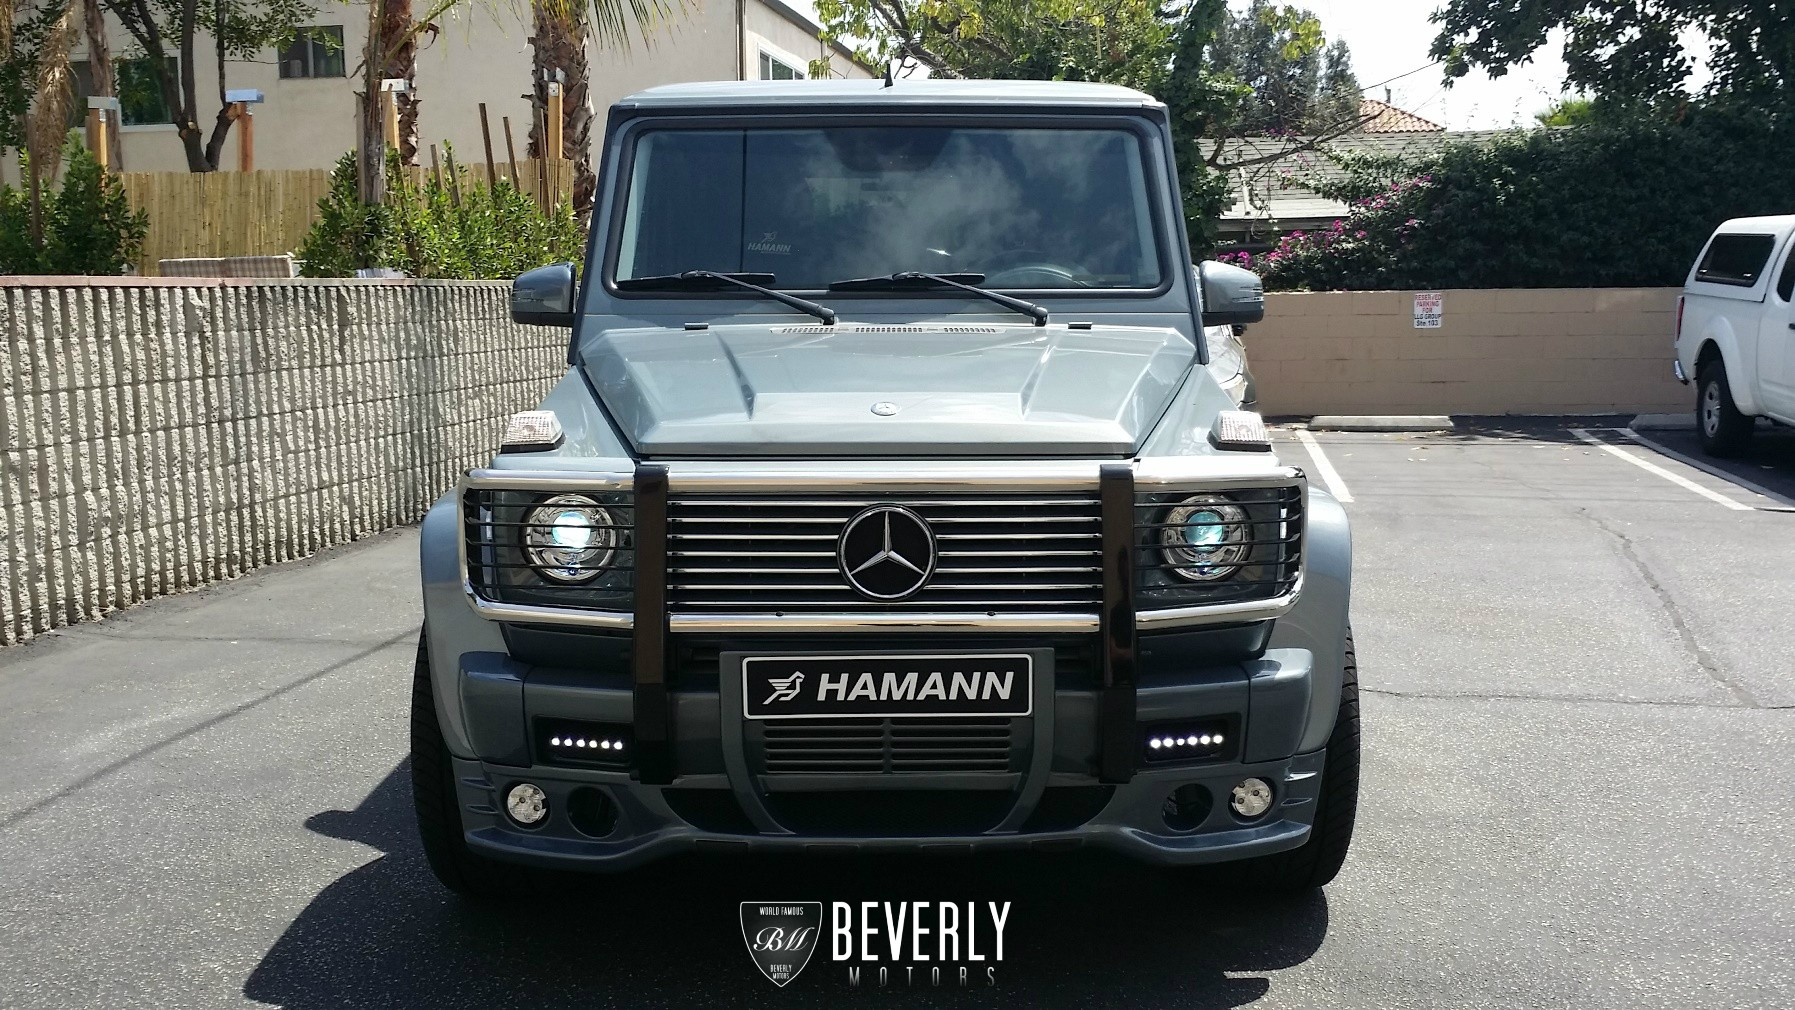 2005 mercedes benz g500 hamann for sale beverly motors for 2014 mercedes benz g wagon for sale